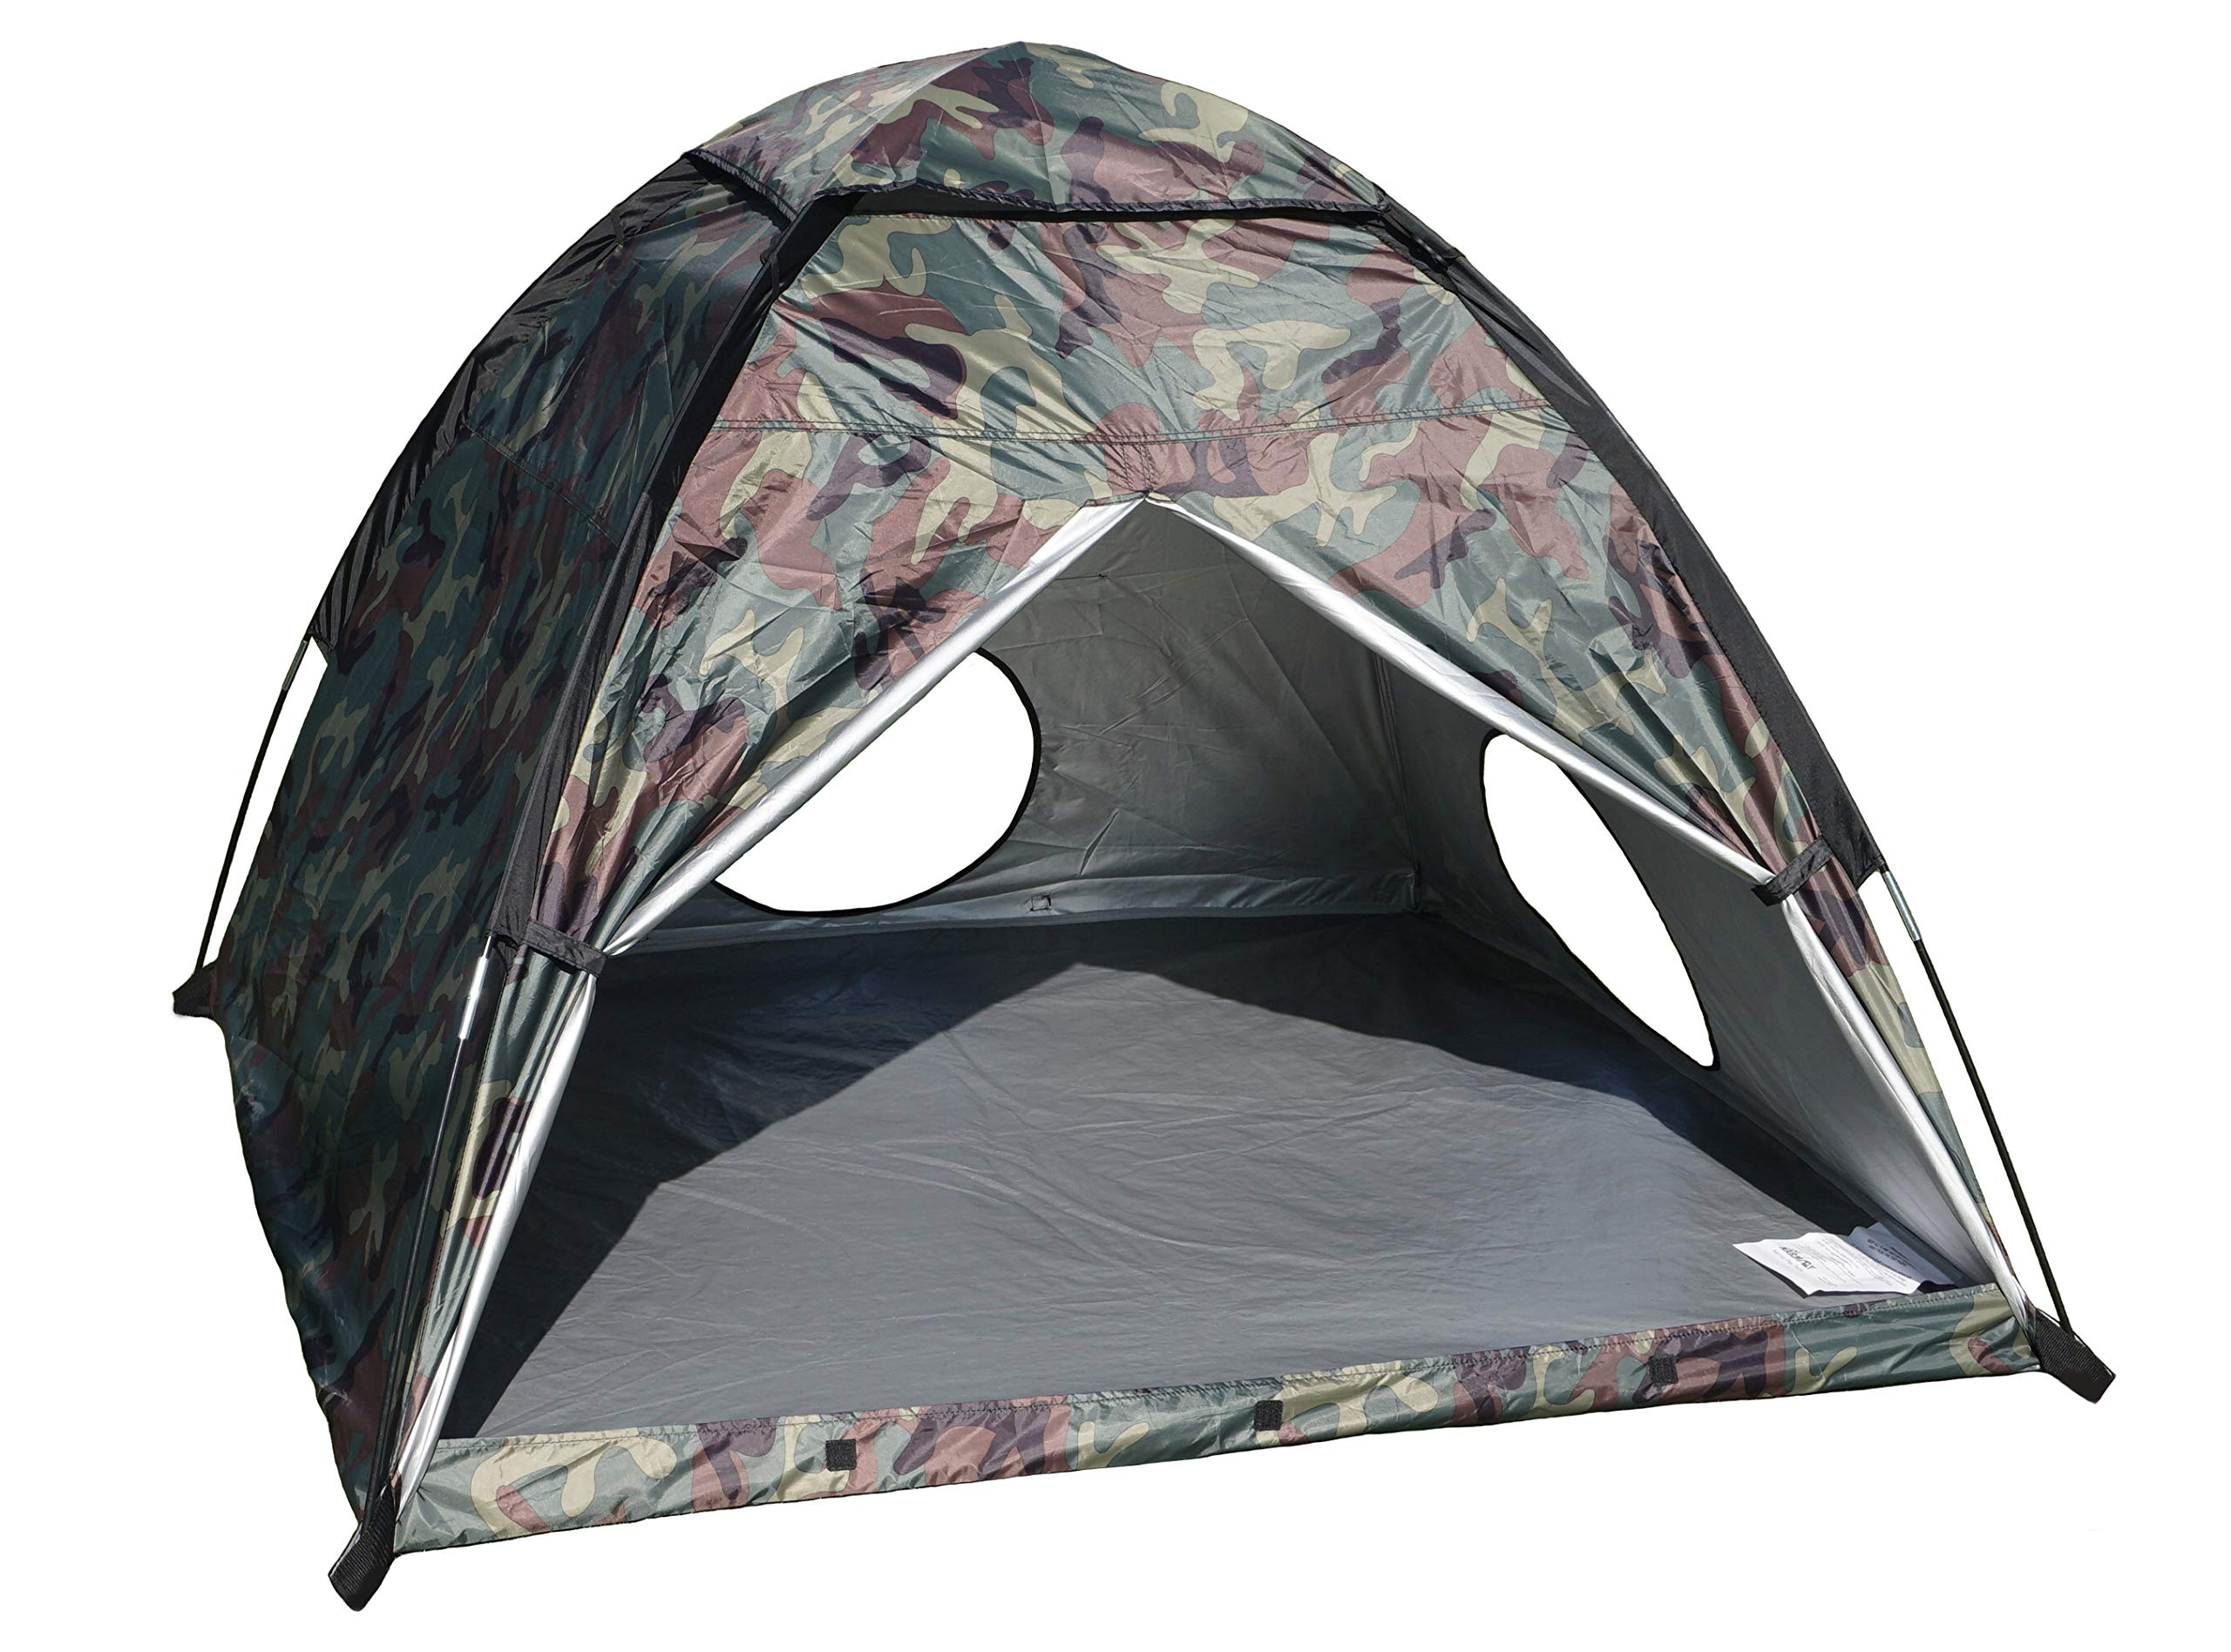 NARMAY Play Tent Camouflage Dome Tent for Kids Indoor / Outdoor Fun - 60 x 60 x 44 inch by NARMAY (Image #6)